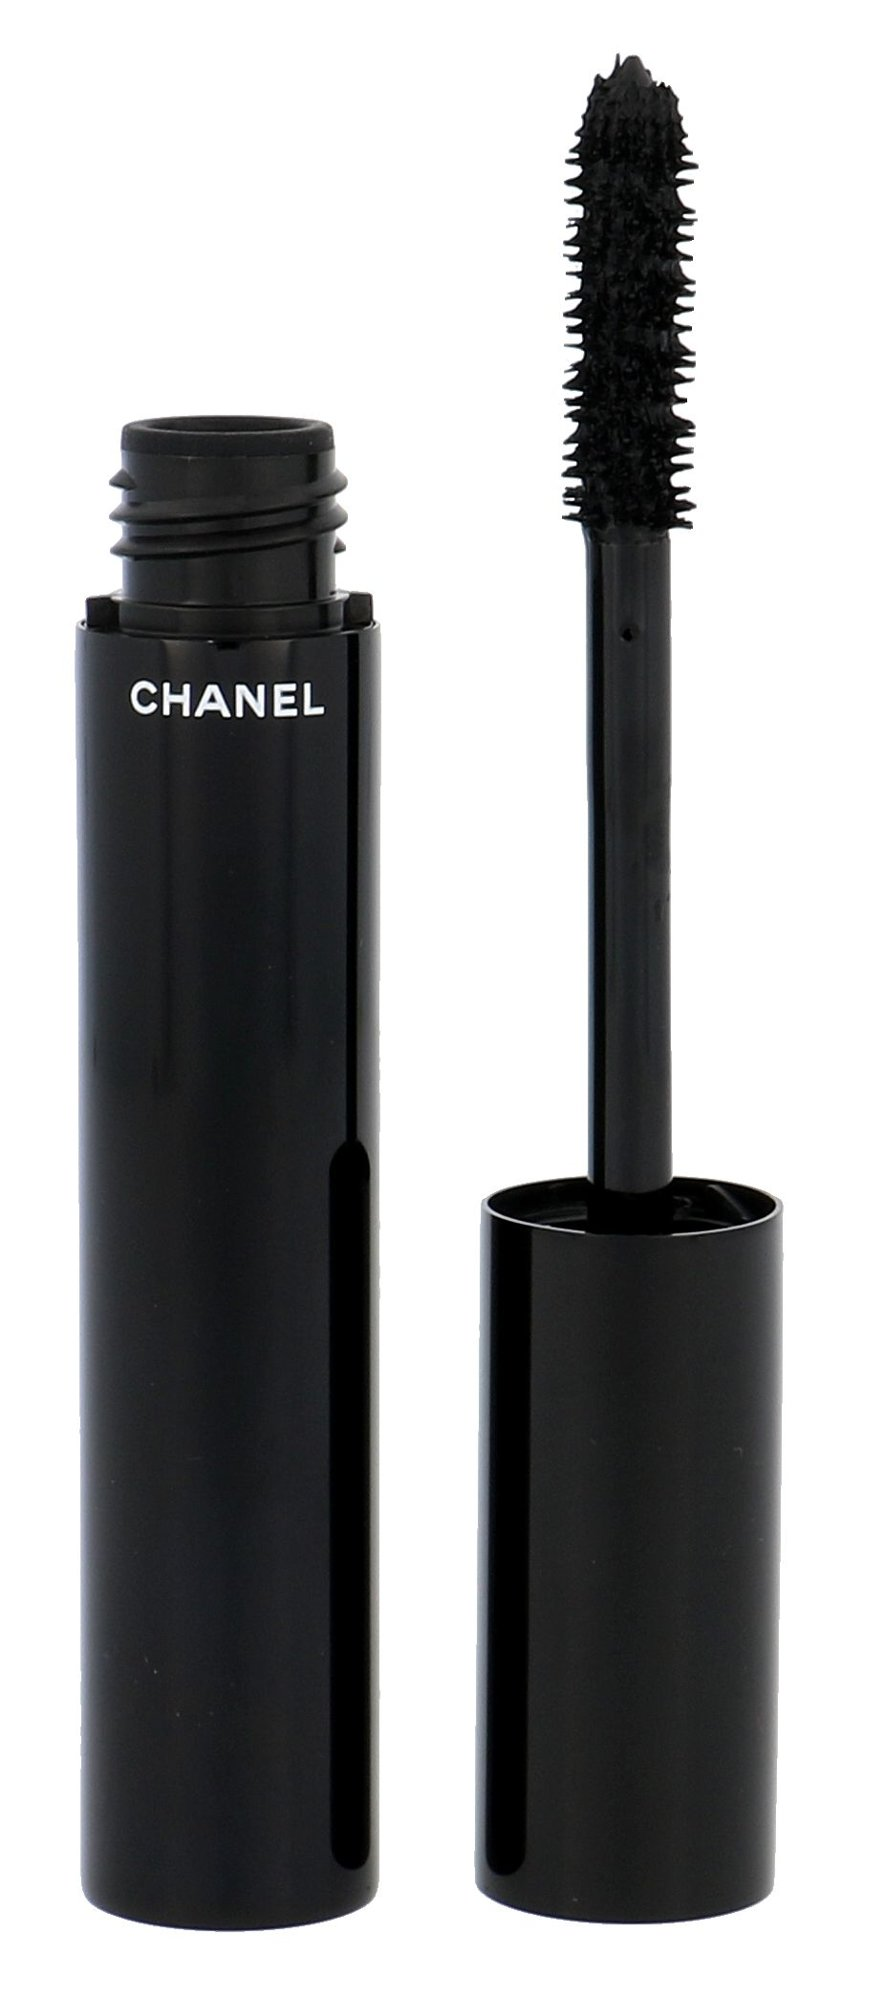 Chanel Le Volume De Chanel Cosmetic 6ml 90 Ultra Black